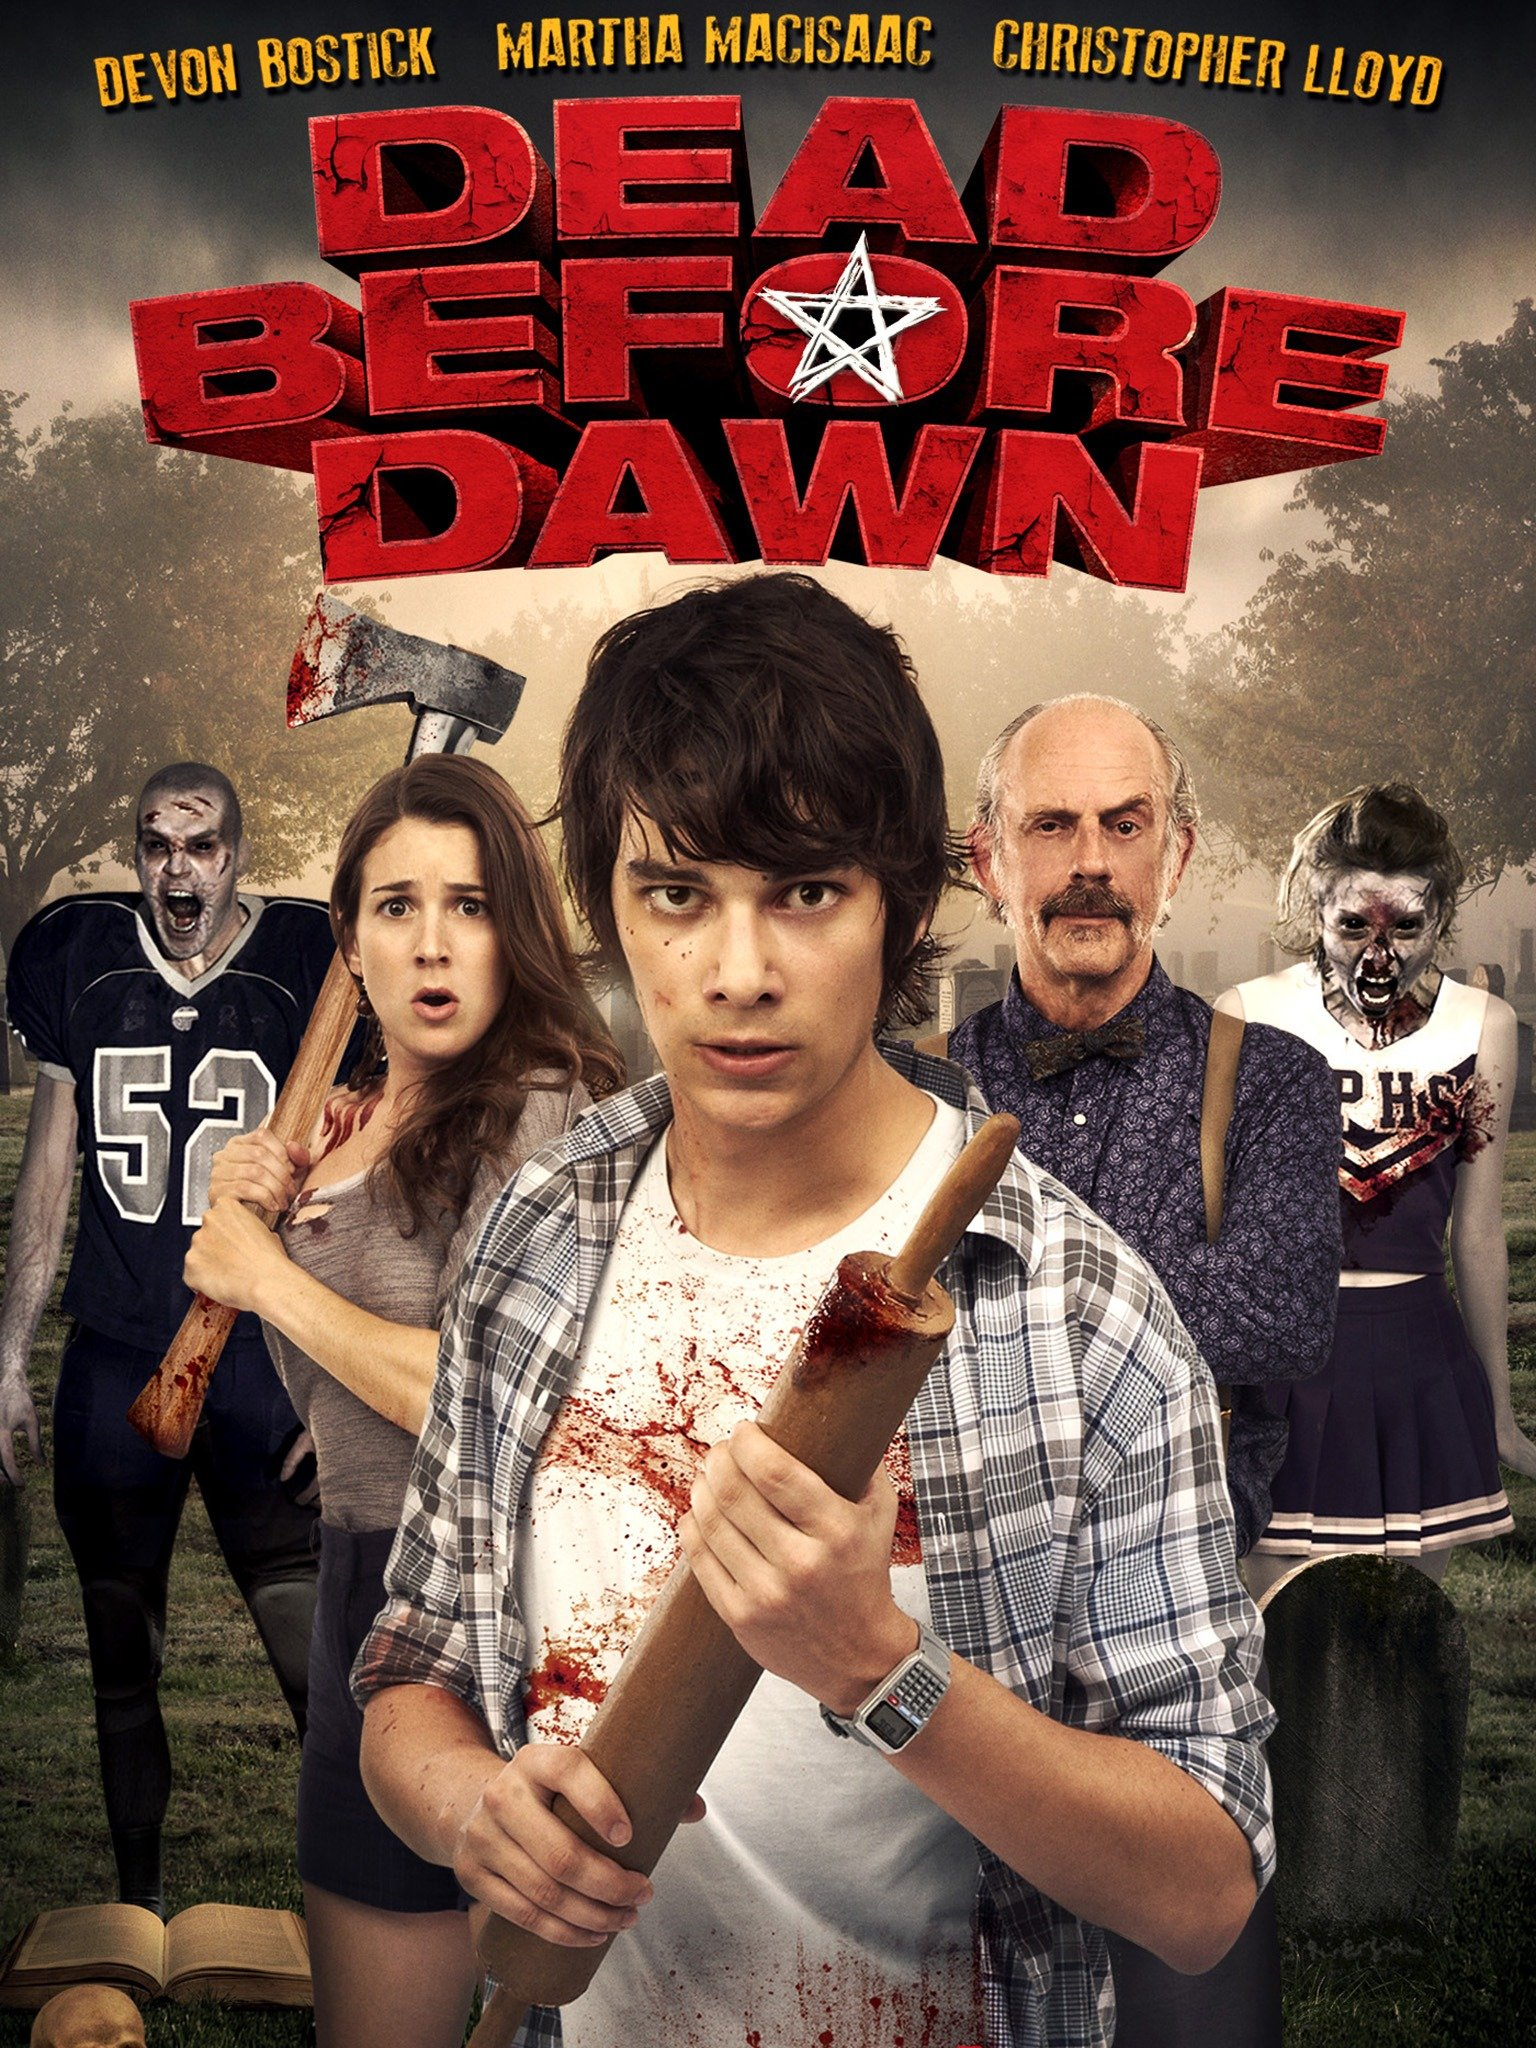 Dead Before Dawn 2012 Rotten Tomatoes